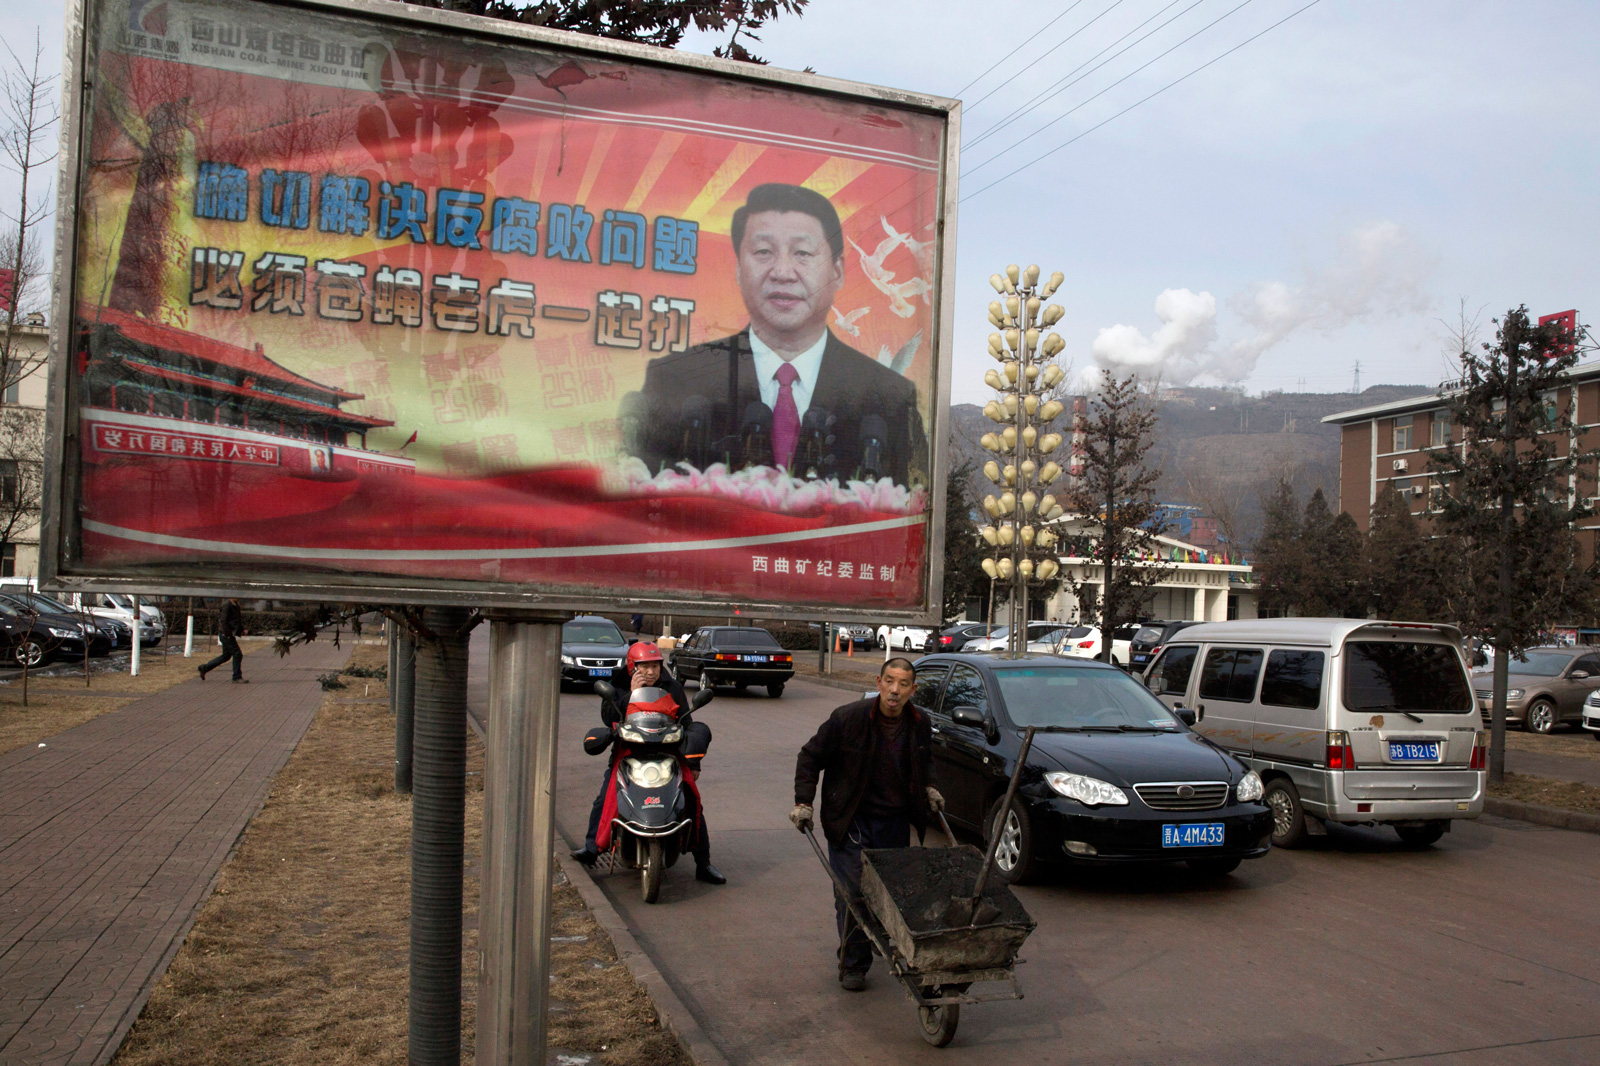 Chinese Censorship Comes Out of the Shadows